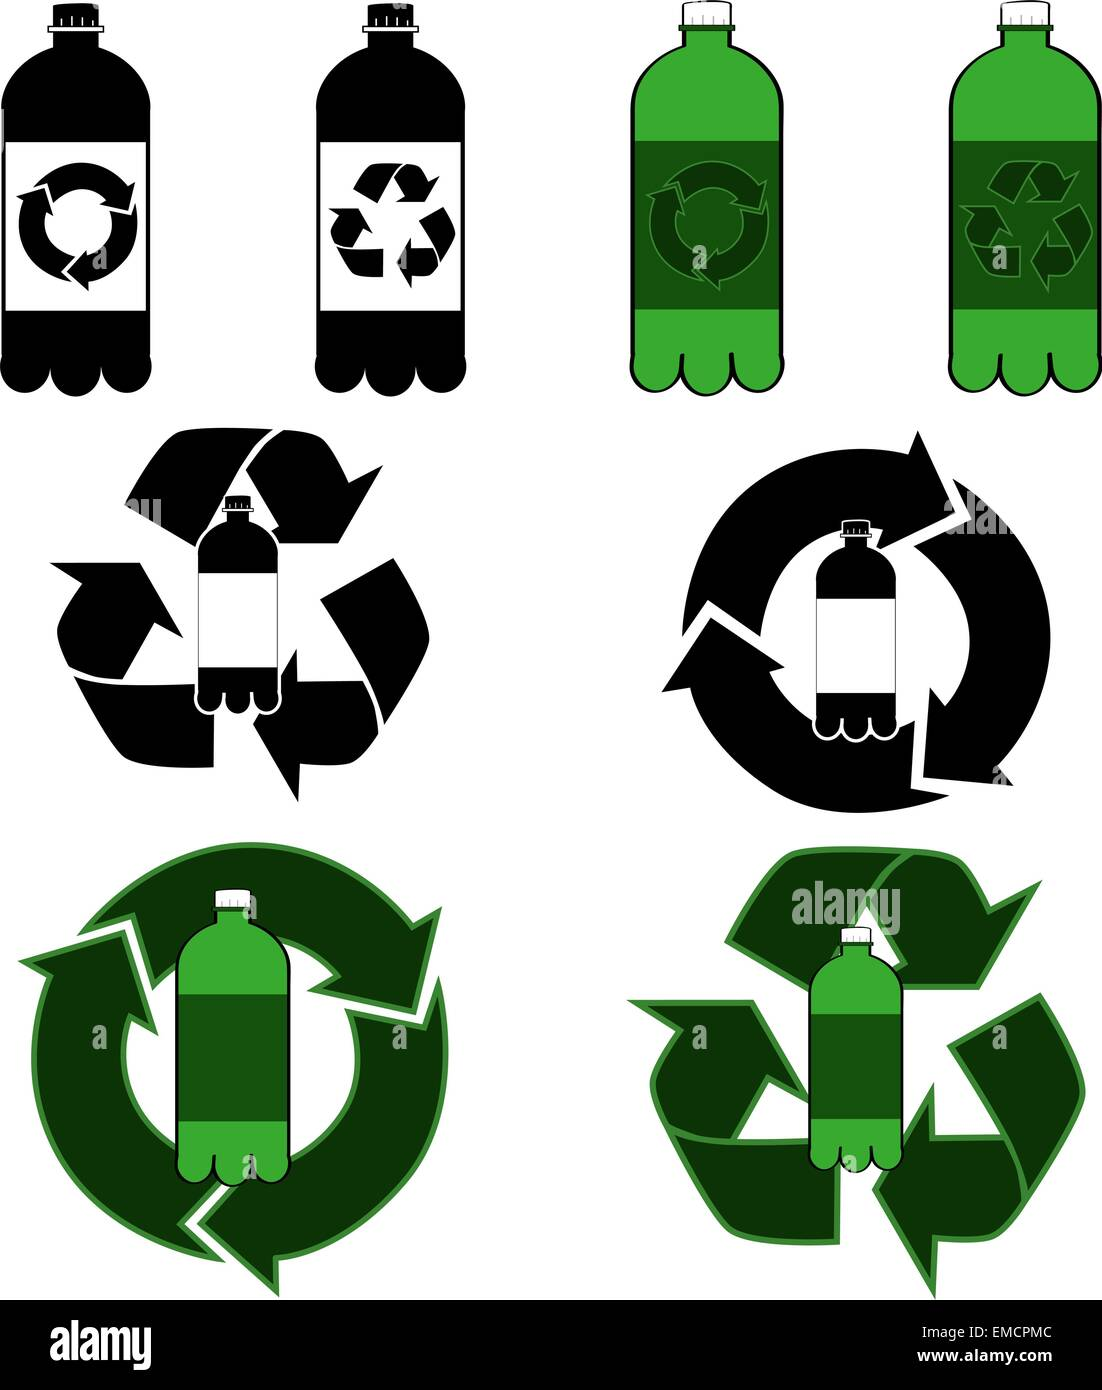 Bottle recycling - Stock Vector